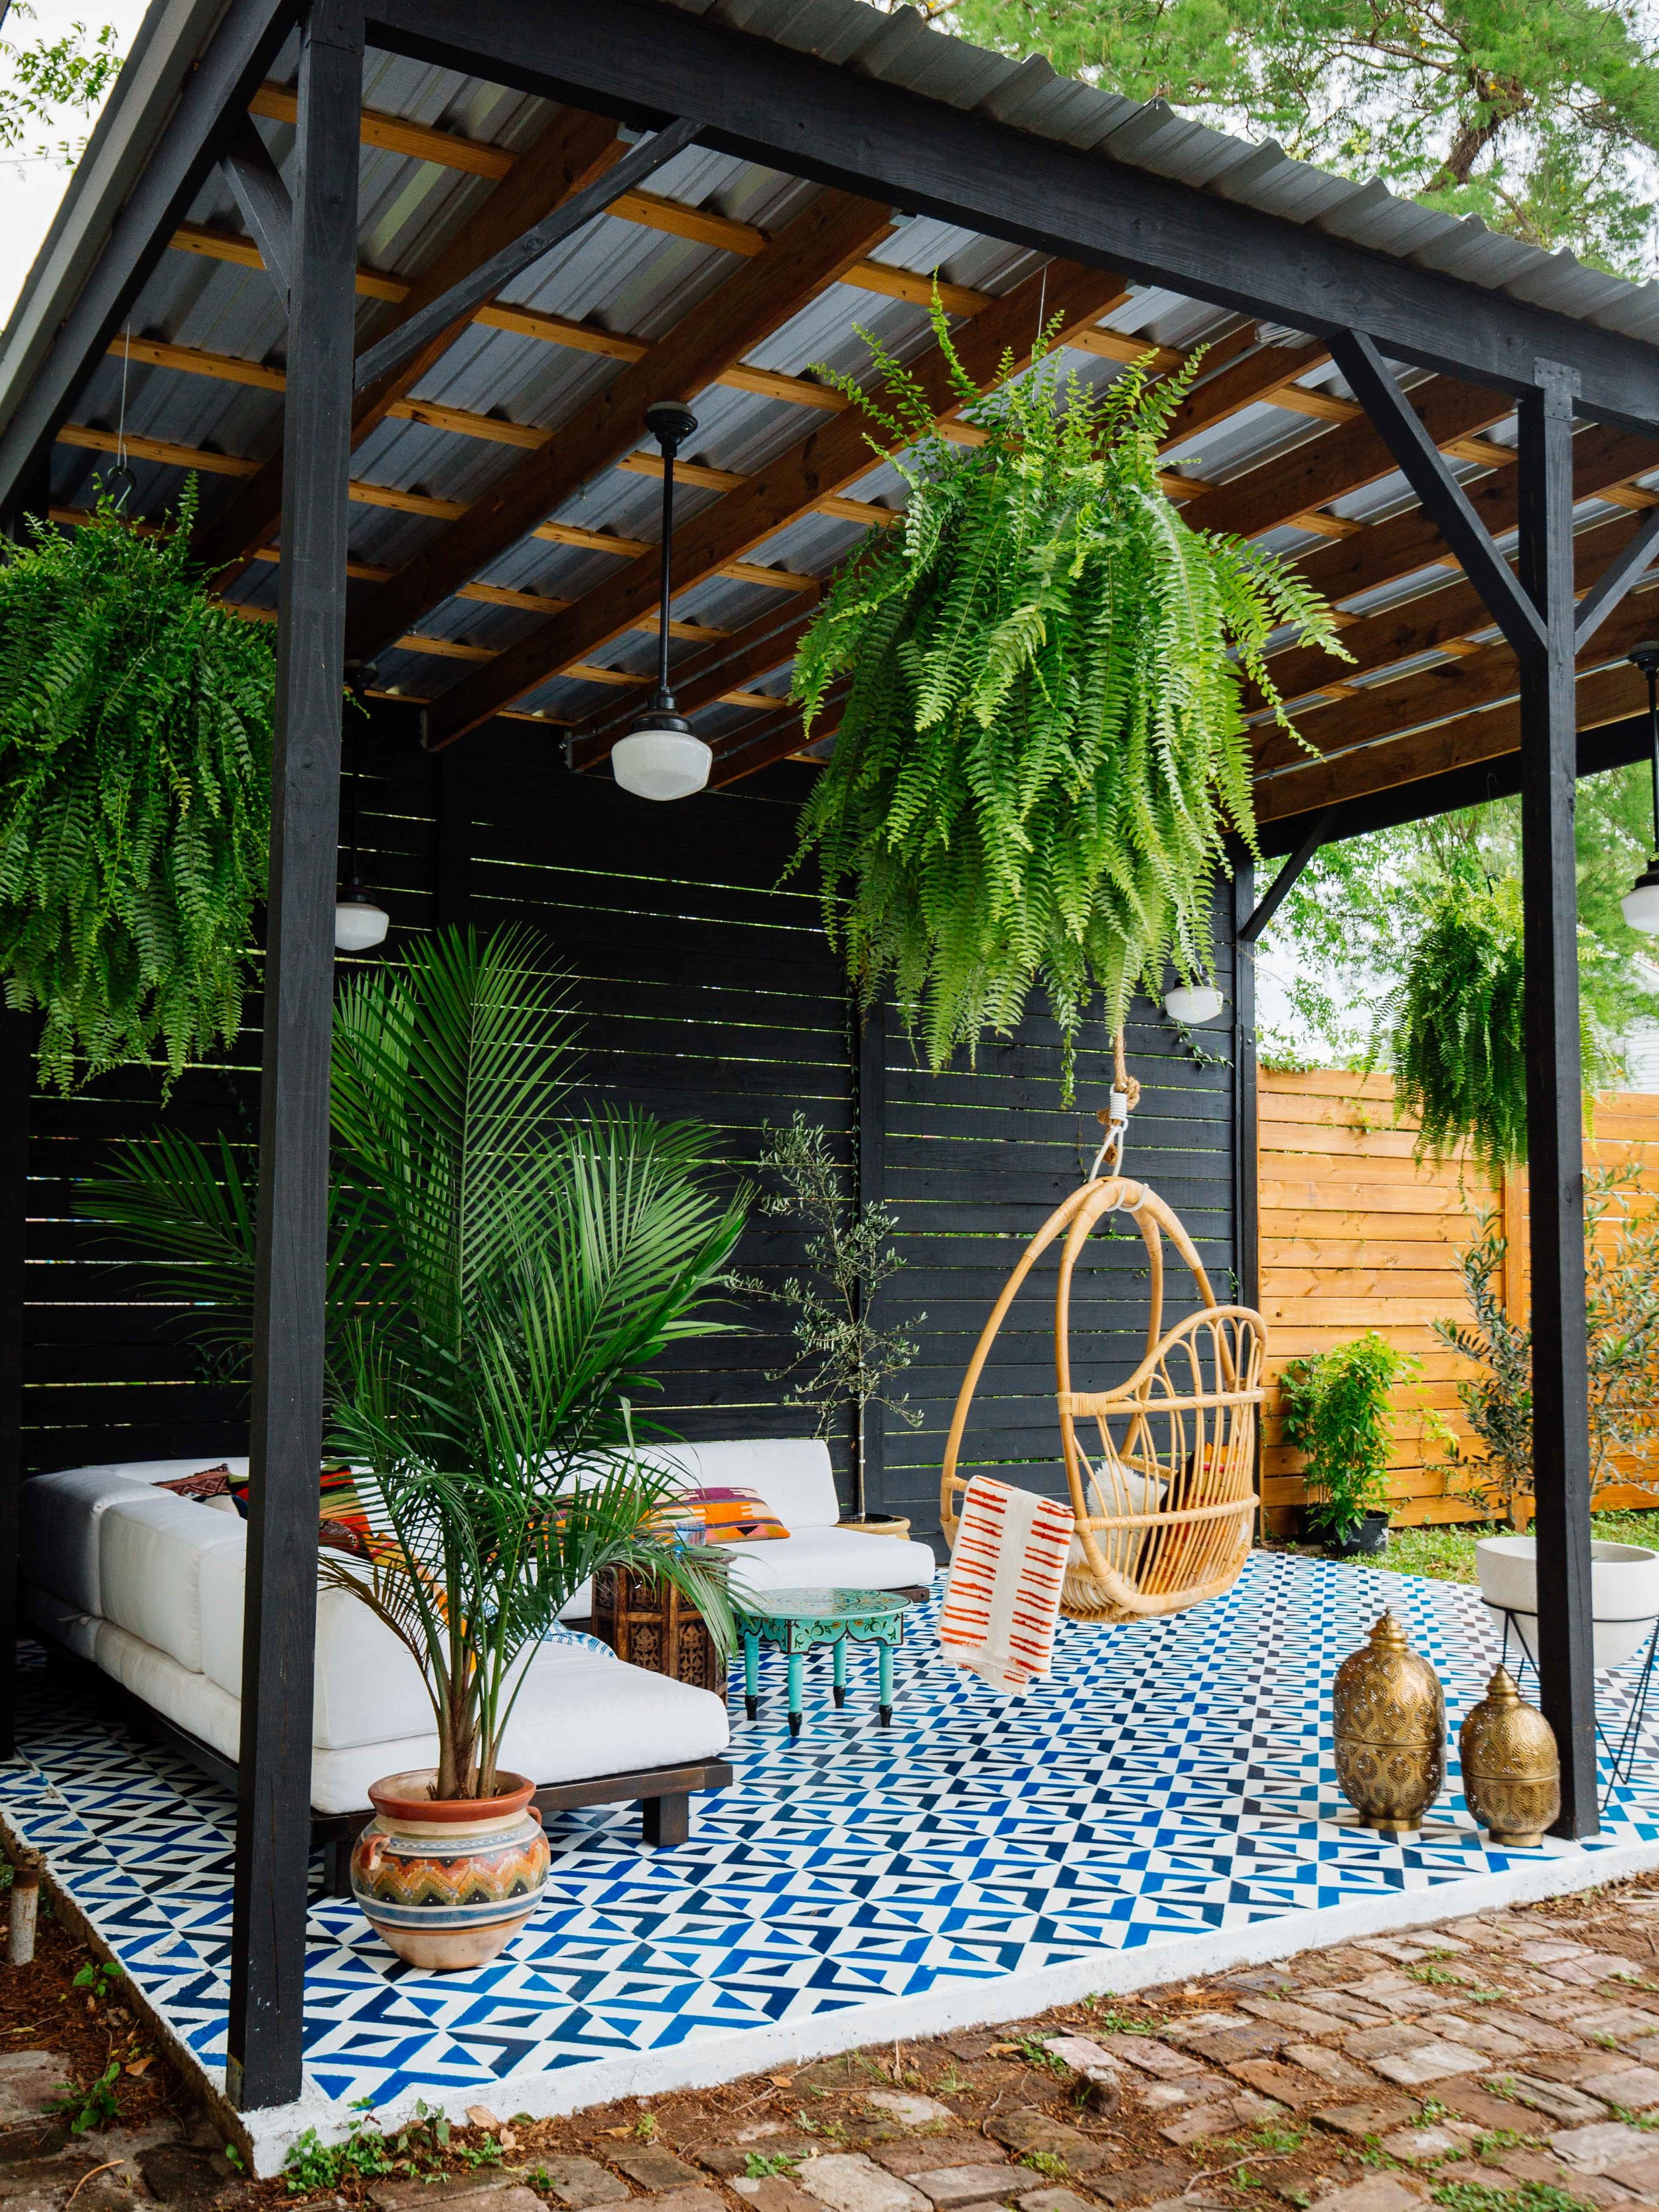 Old Brand New's Patio Makeover